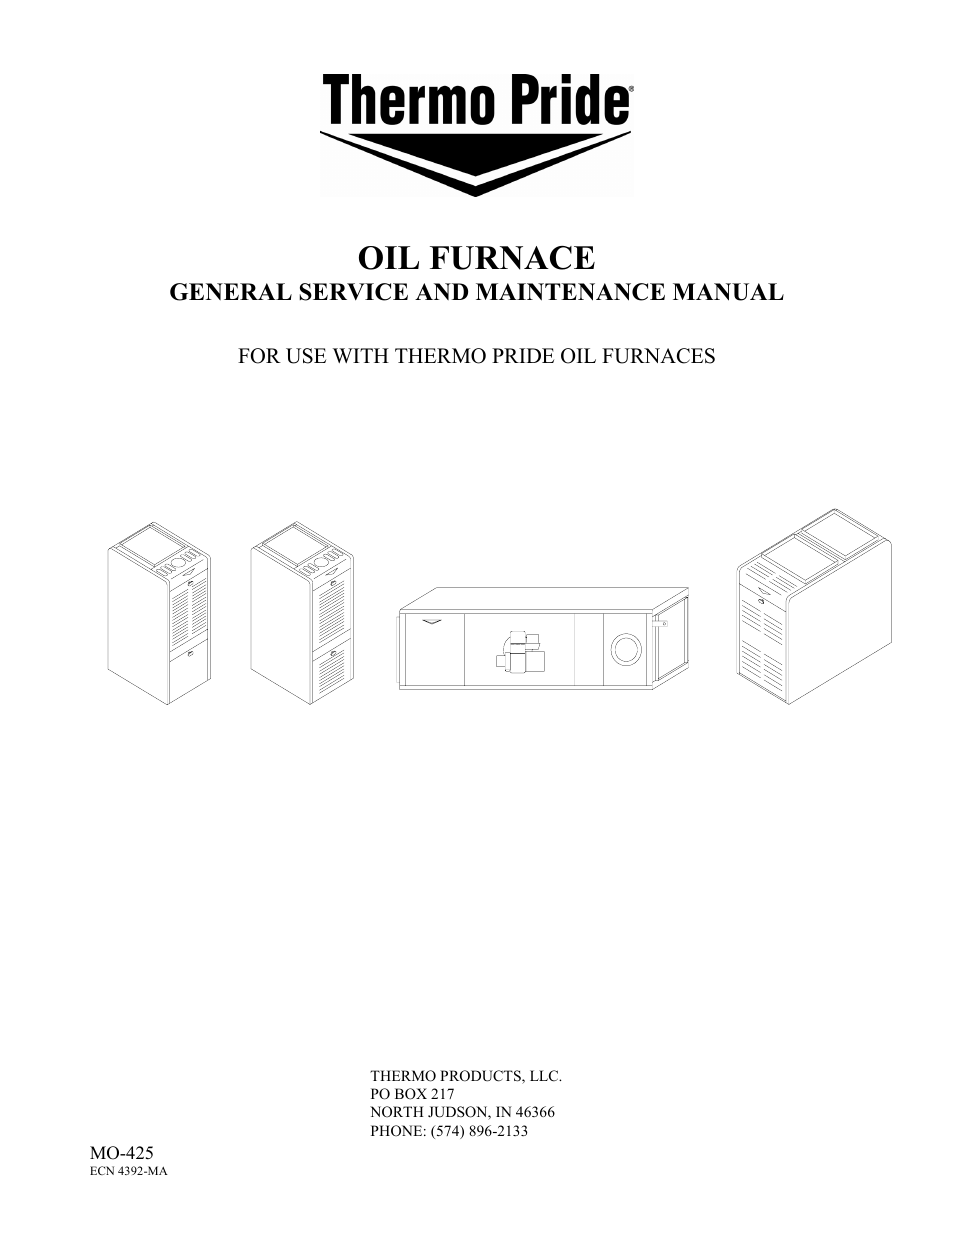 Thermo Pride Oil Furnace Wiring Schematic Diagrams Schema Miller Diagram General Service And Maintenance User Armstrong